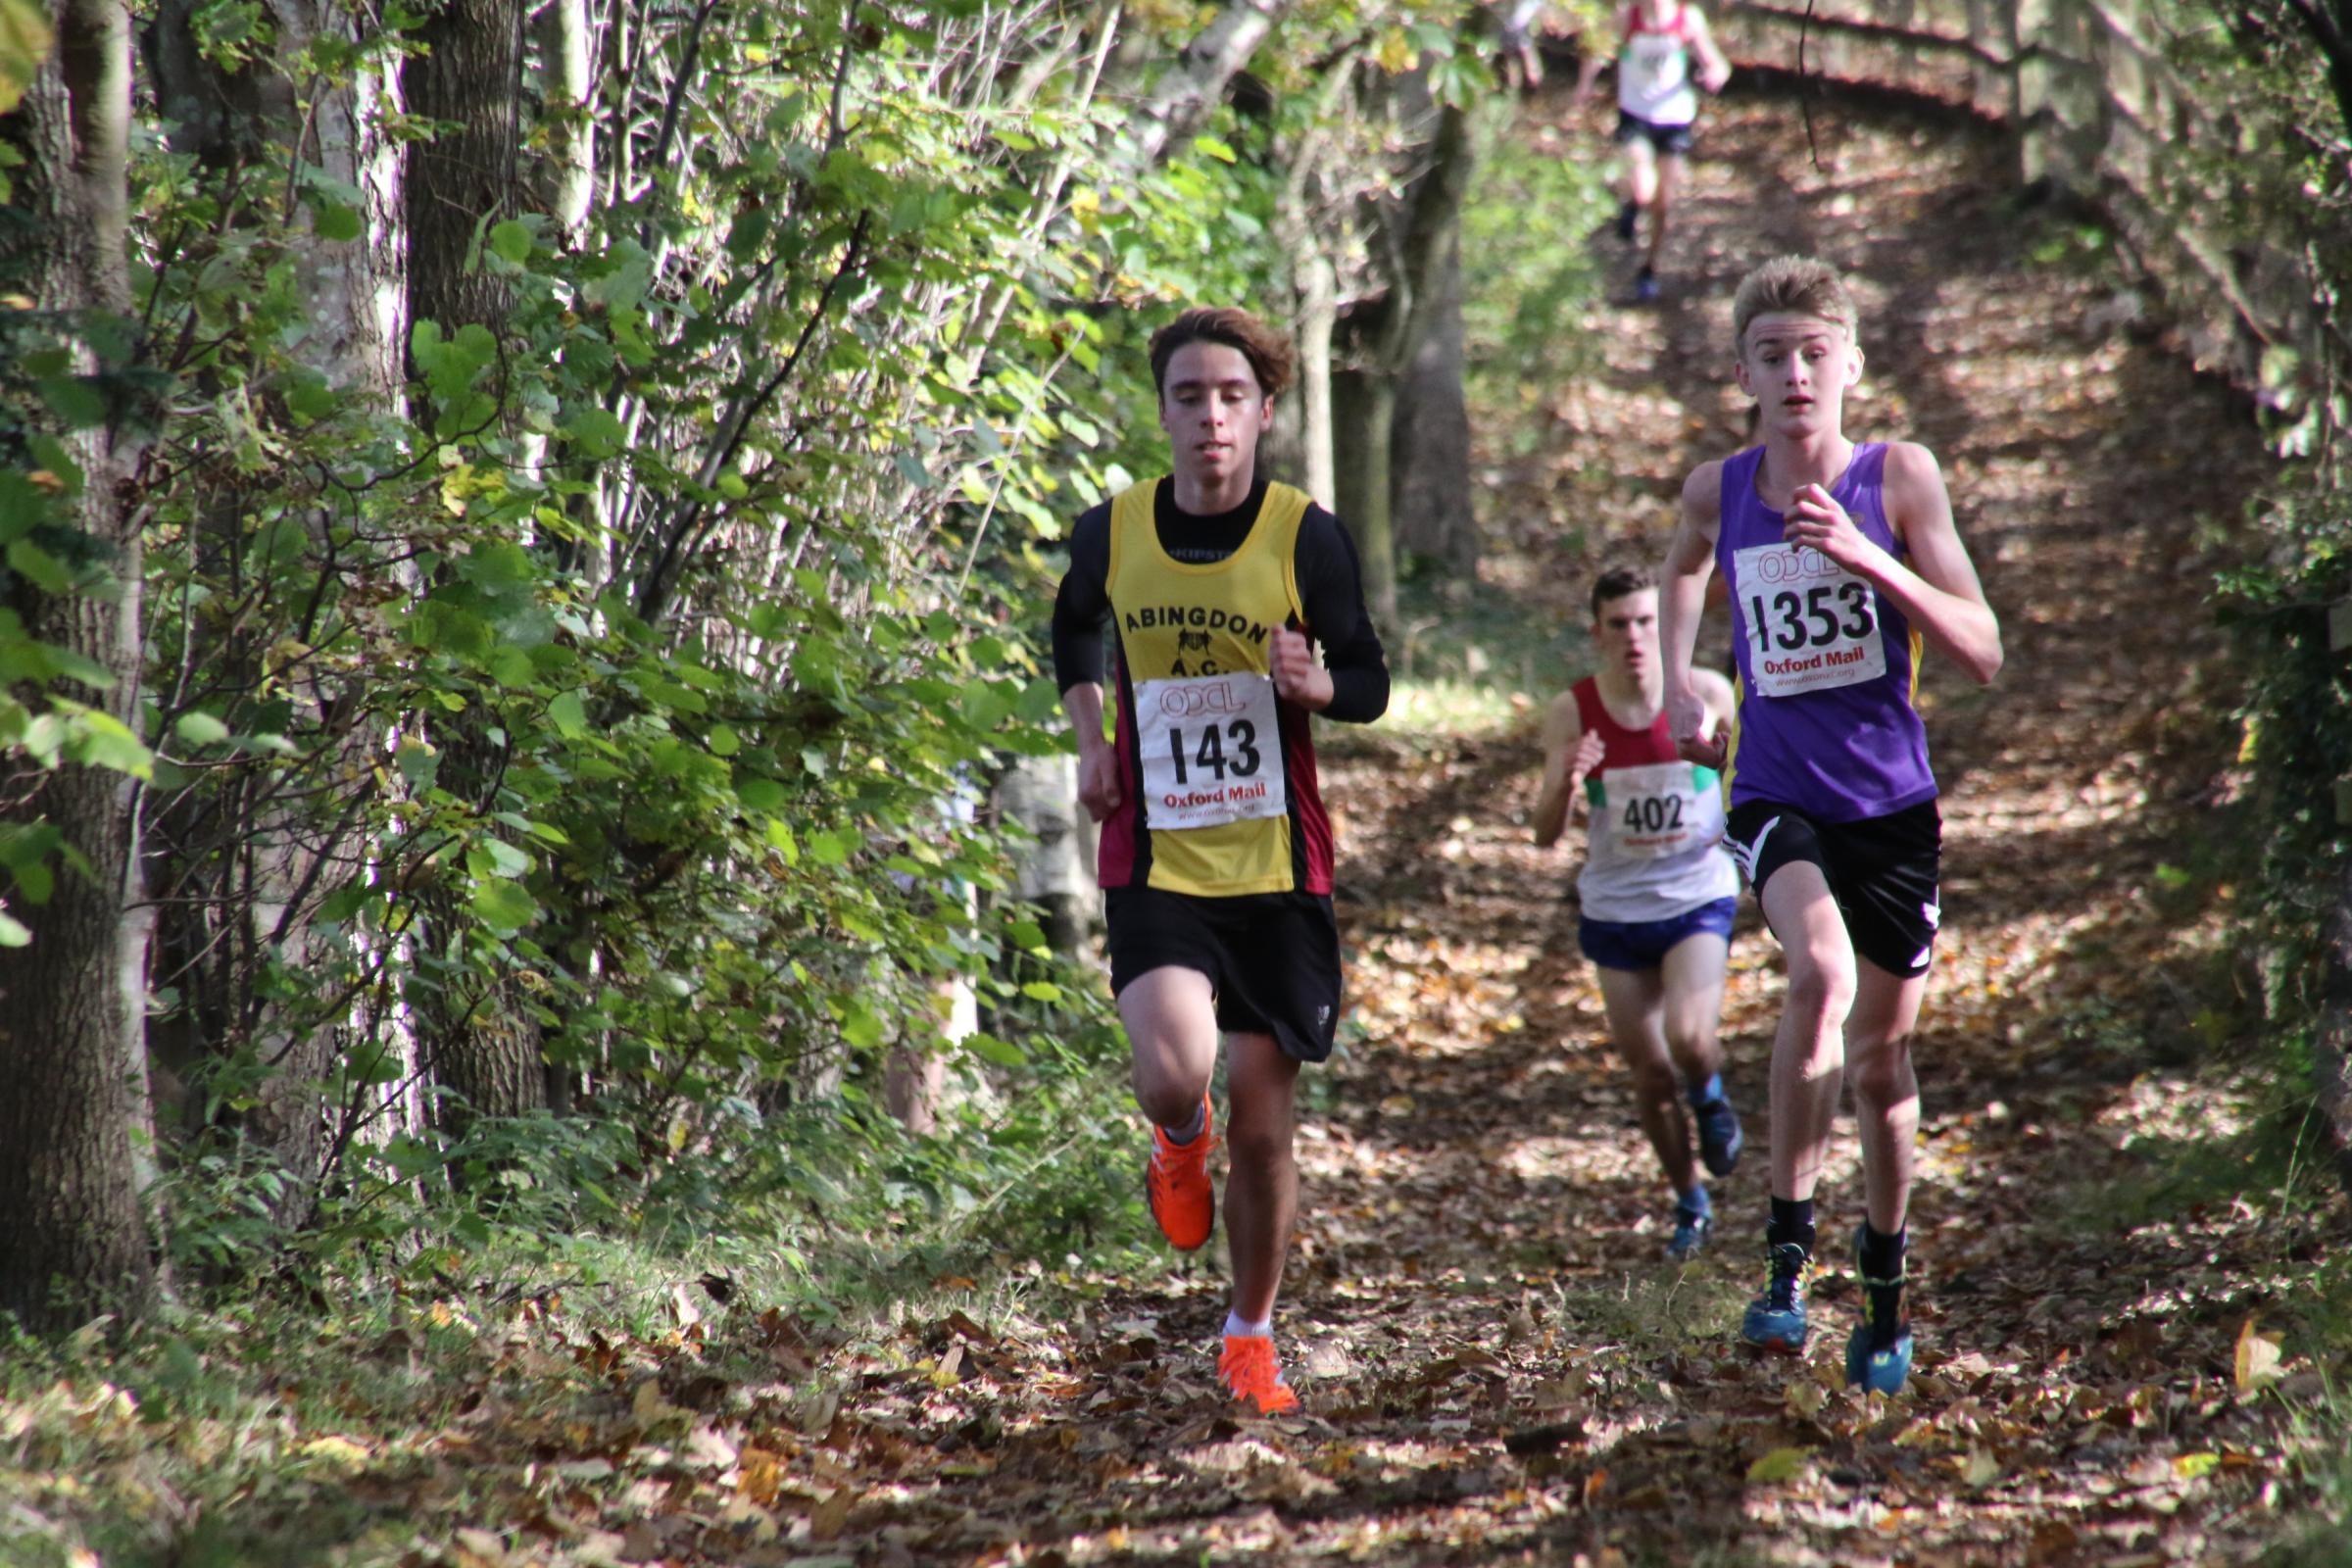 Abingdon's Adam Ede finished ninth in the under 17 men's race during the third round of the Chiltern Cross Country League Picture: Barry Cornelius